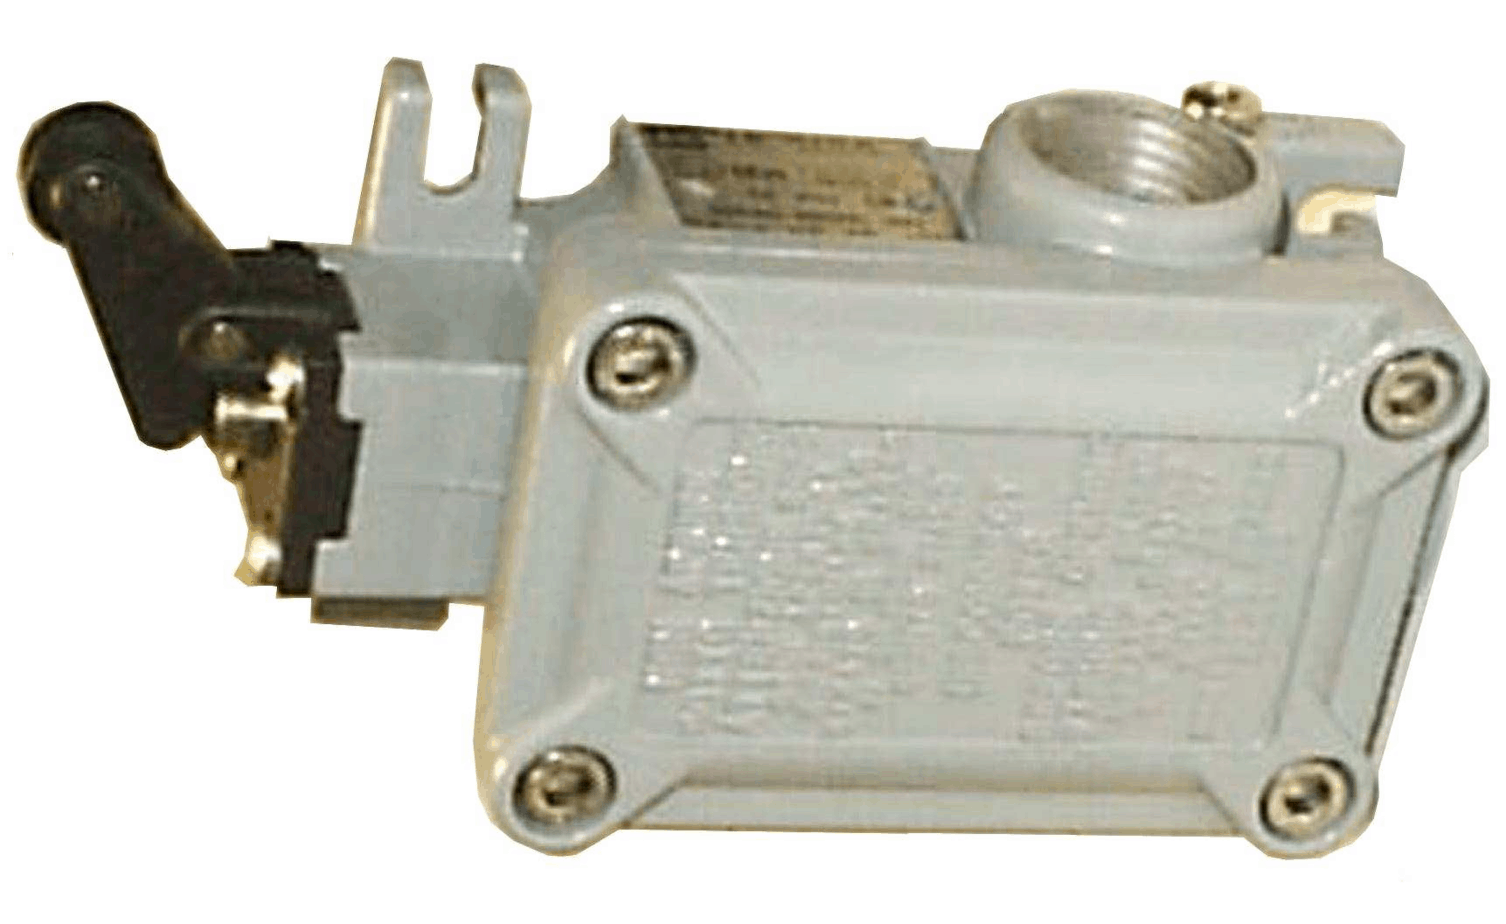 LS5105 Limit Switch Atex